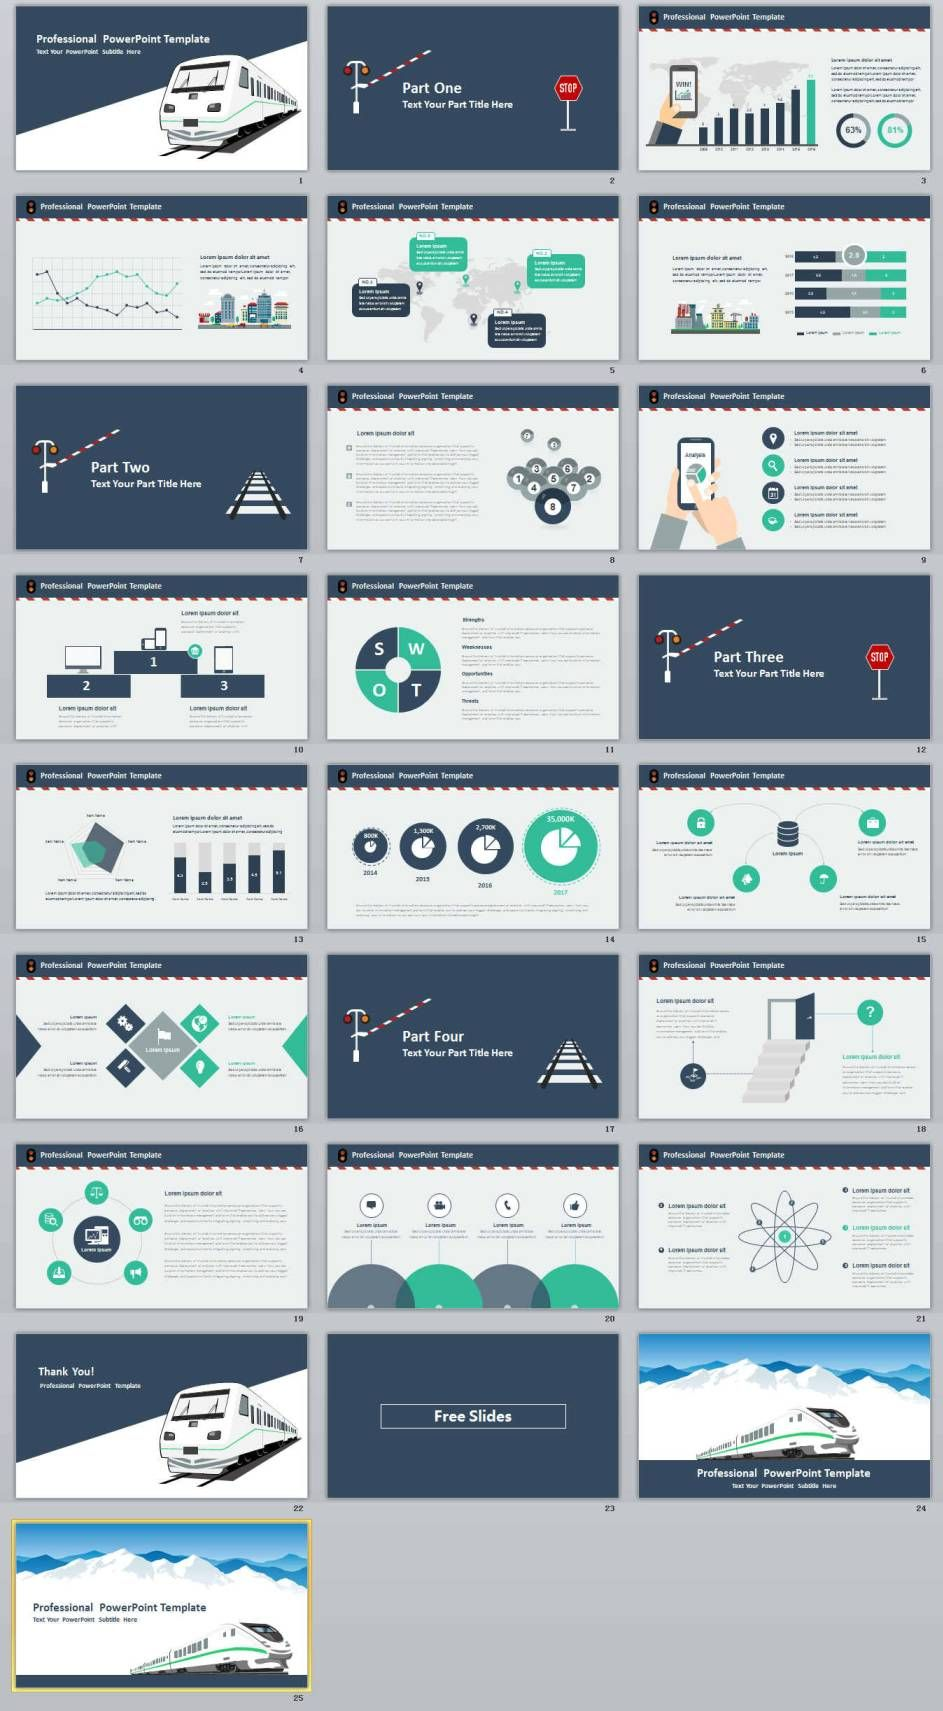 powerpoint template free download 2018 20855 templates collections